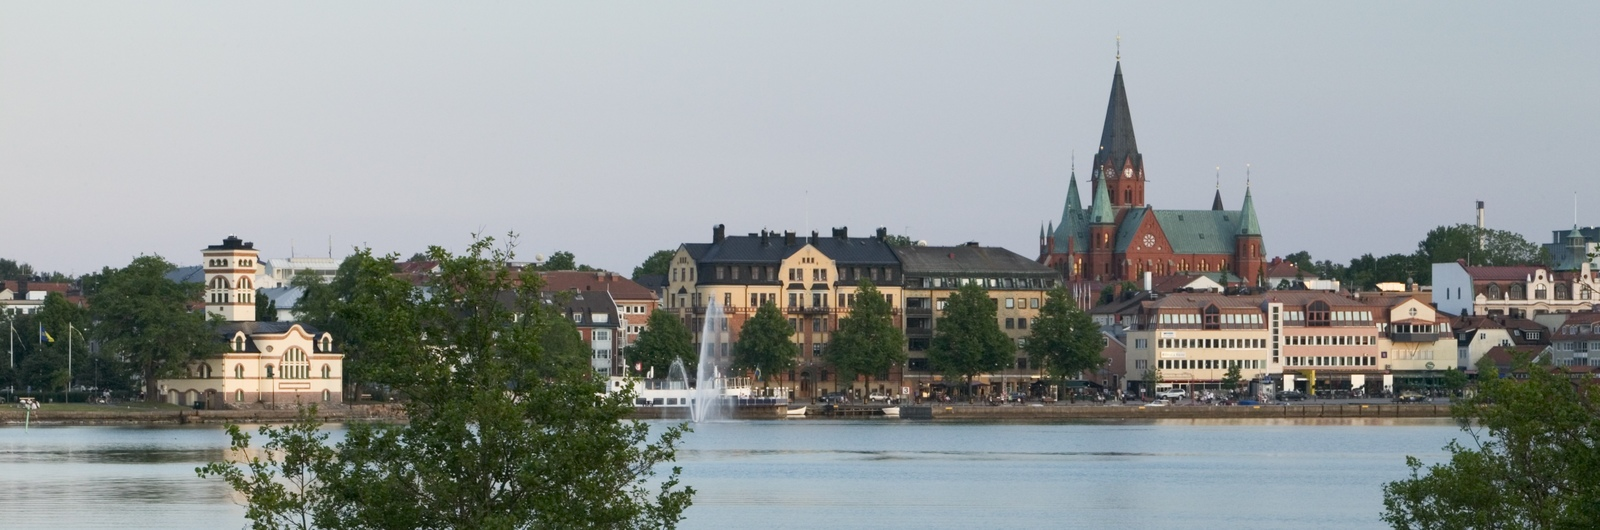 vaestervik city header